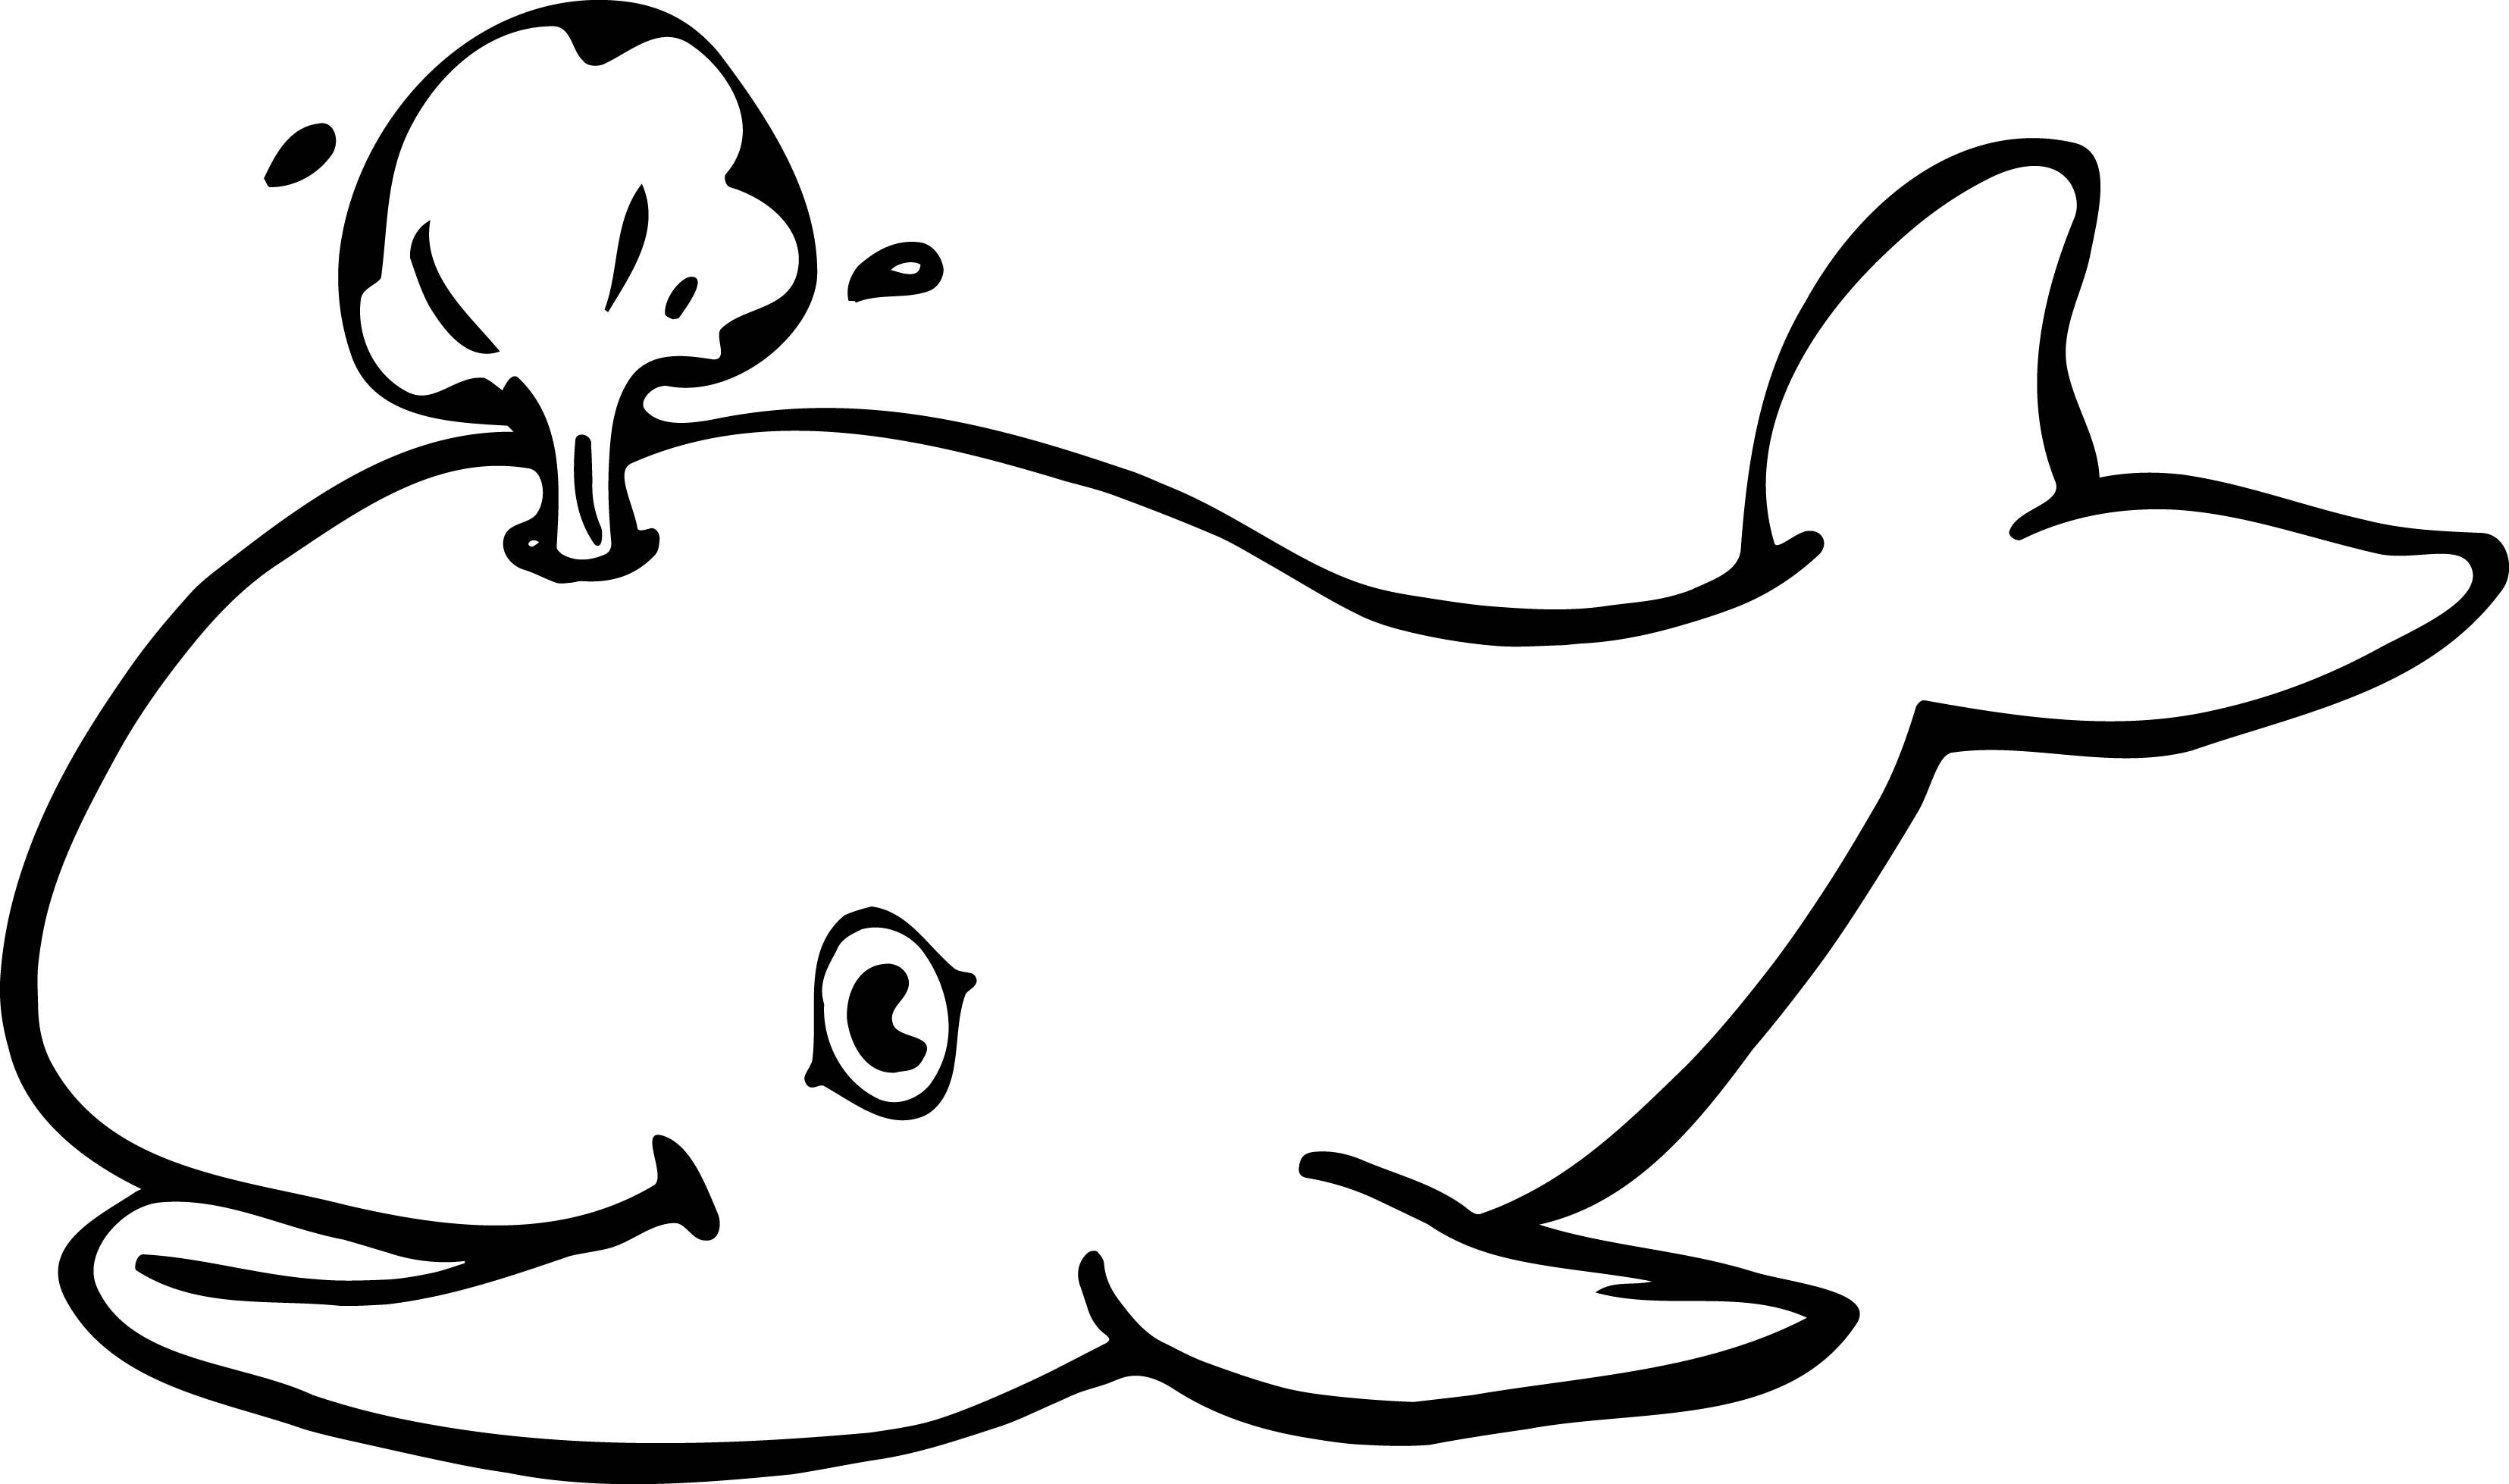 printable whale coloring pages free printable whale coloring pages for kids whale coloring printable pages